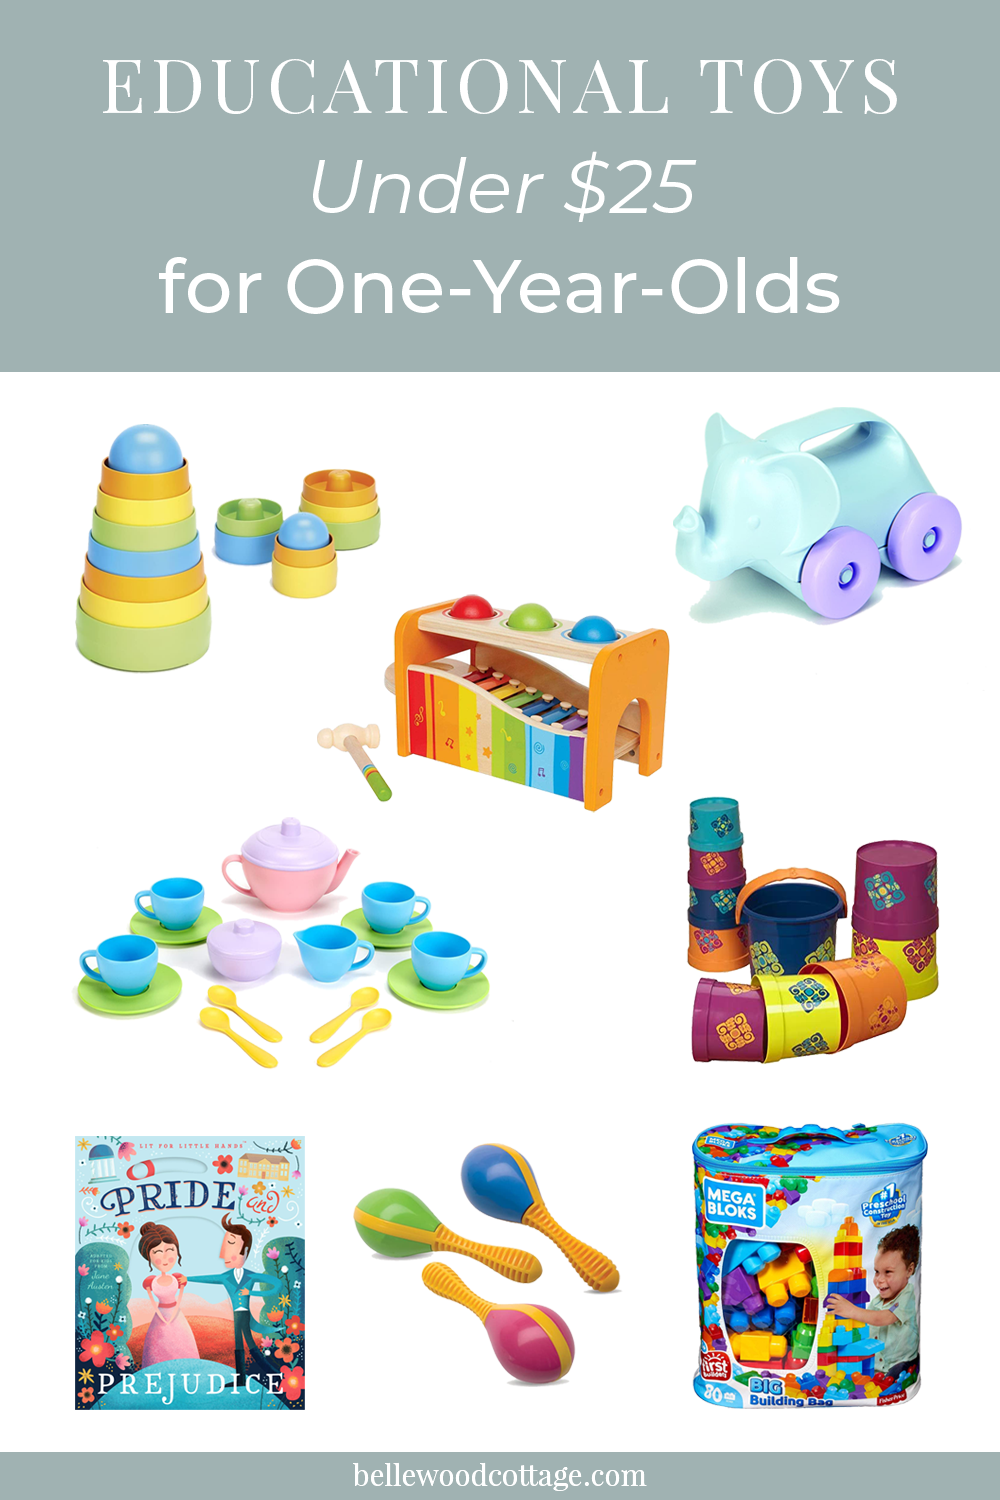 Educational toys under $25 for one-year-old toddlers including stackers, a xylophone, and buckets.